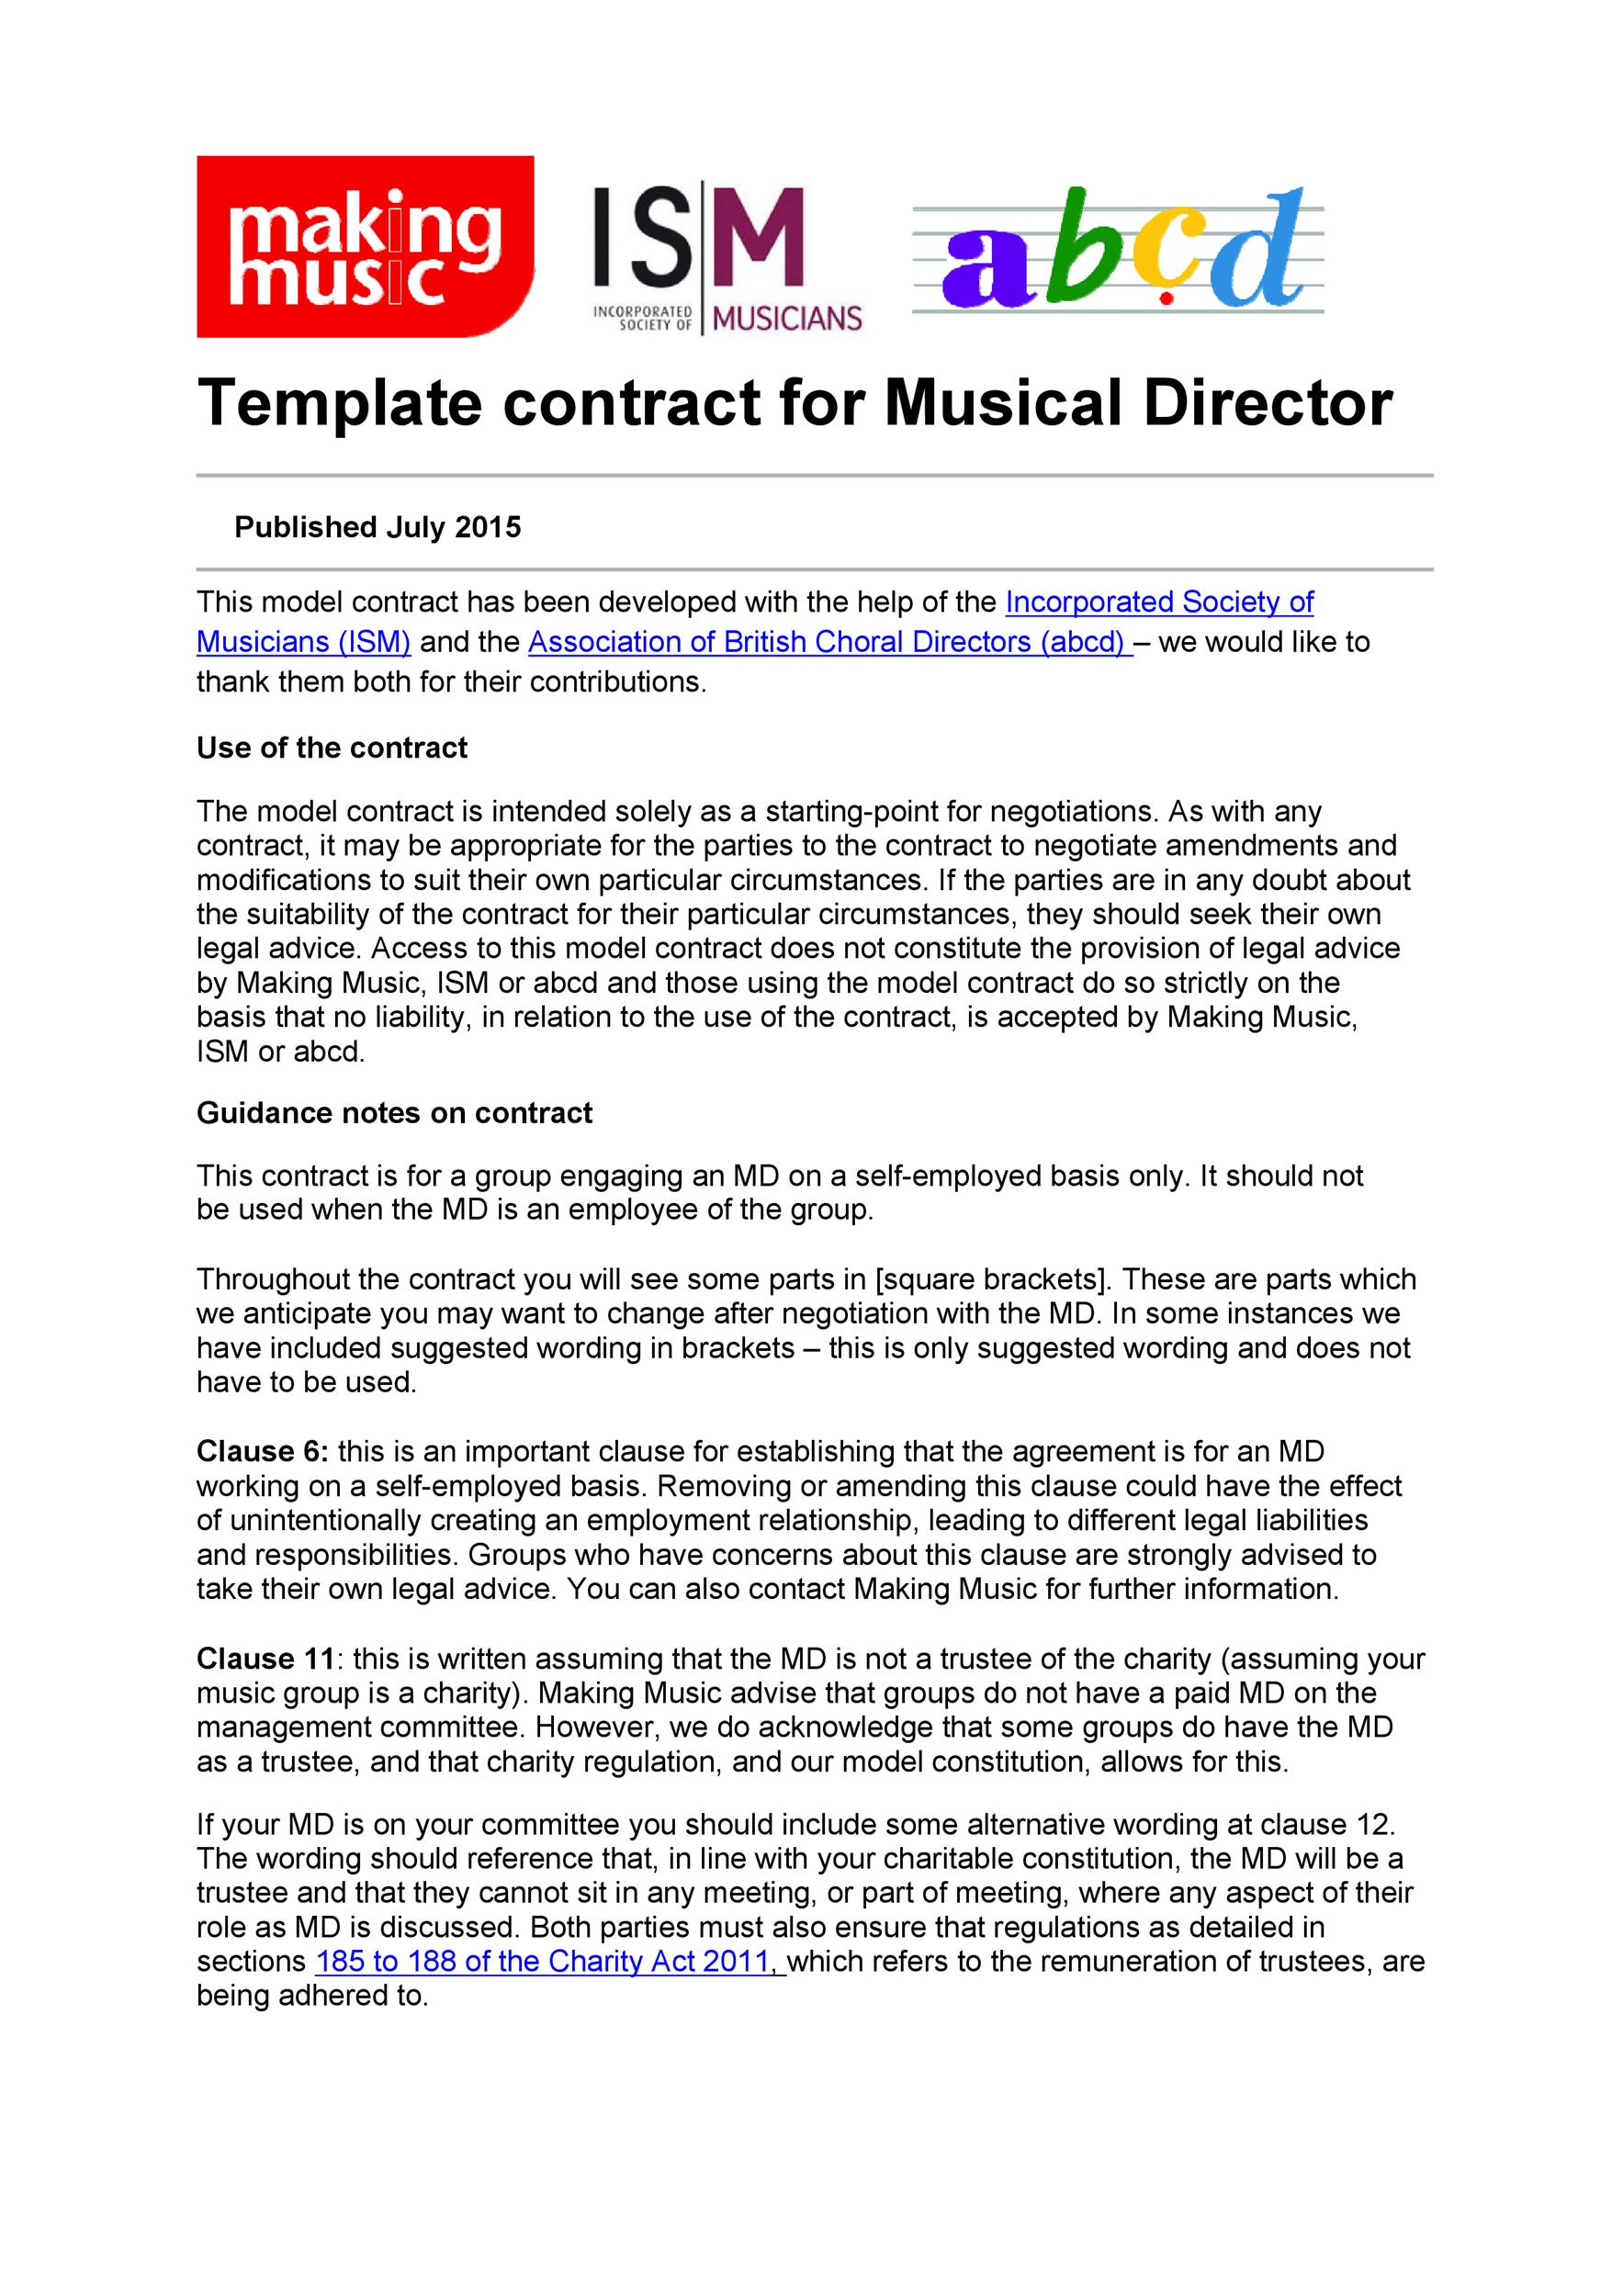 Free artist management contract 16